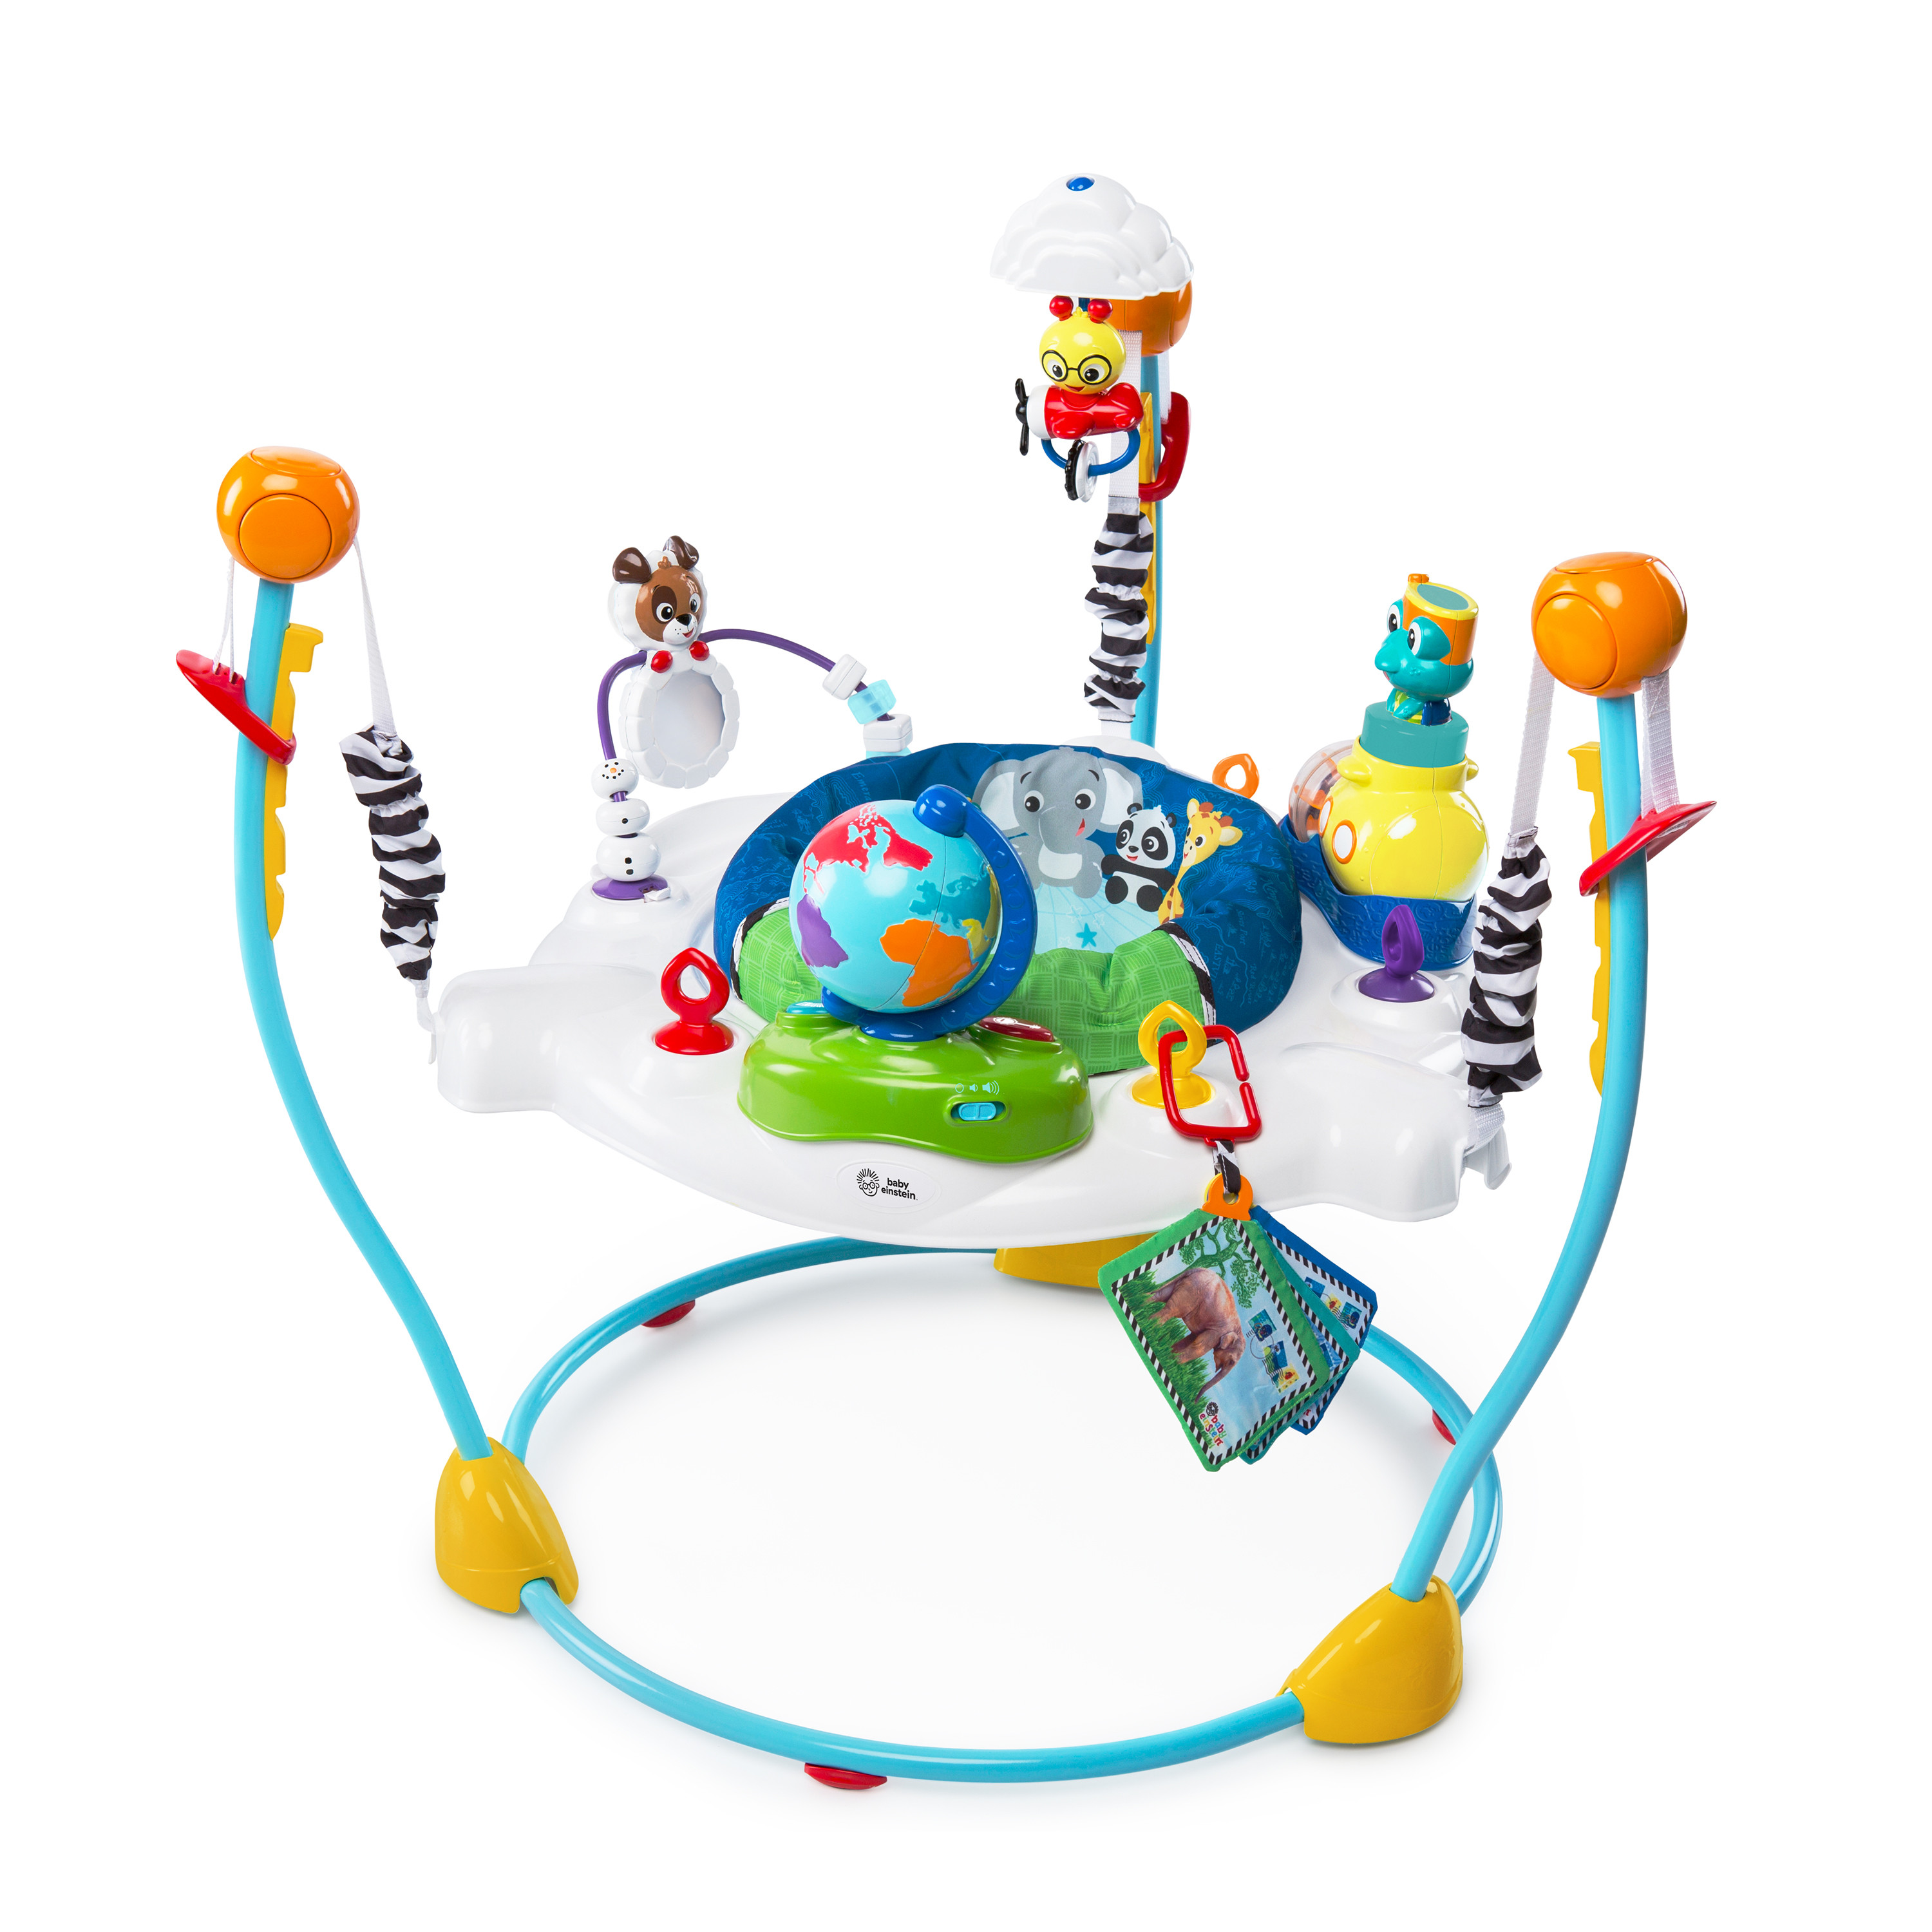 Best Baby Jumpers - Baby Einstein, Journey Of Discovery Jumper Review